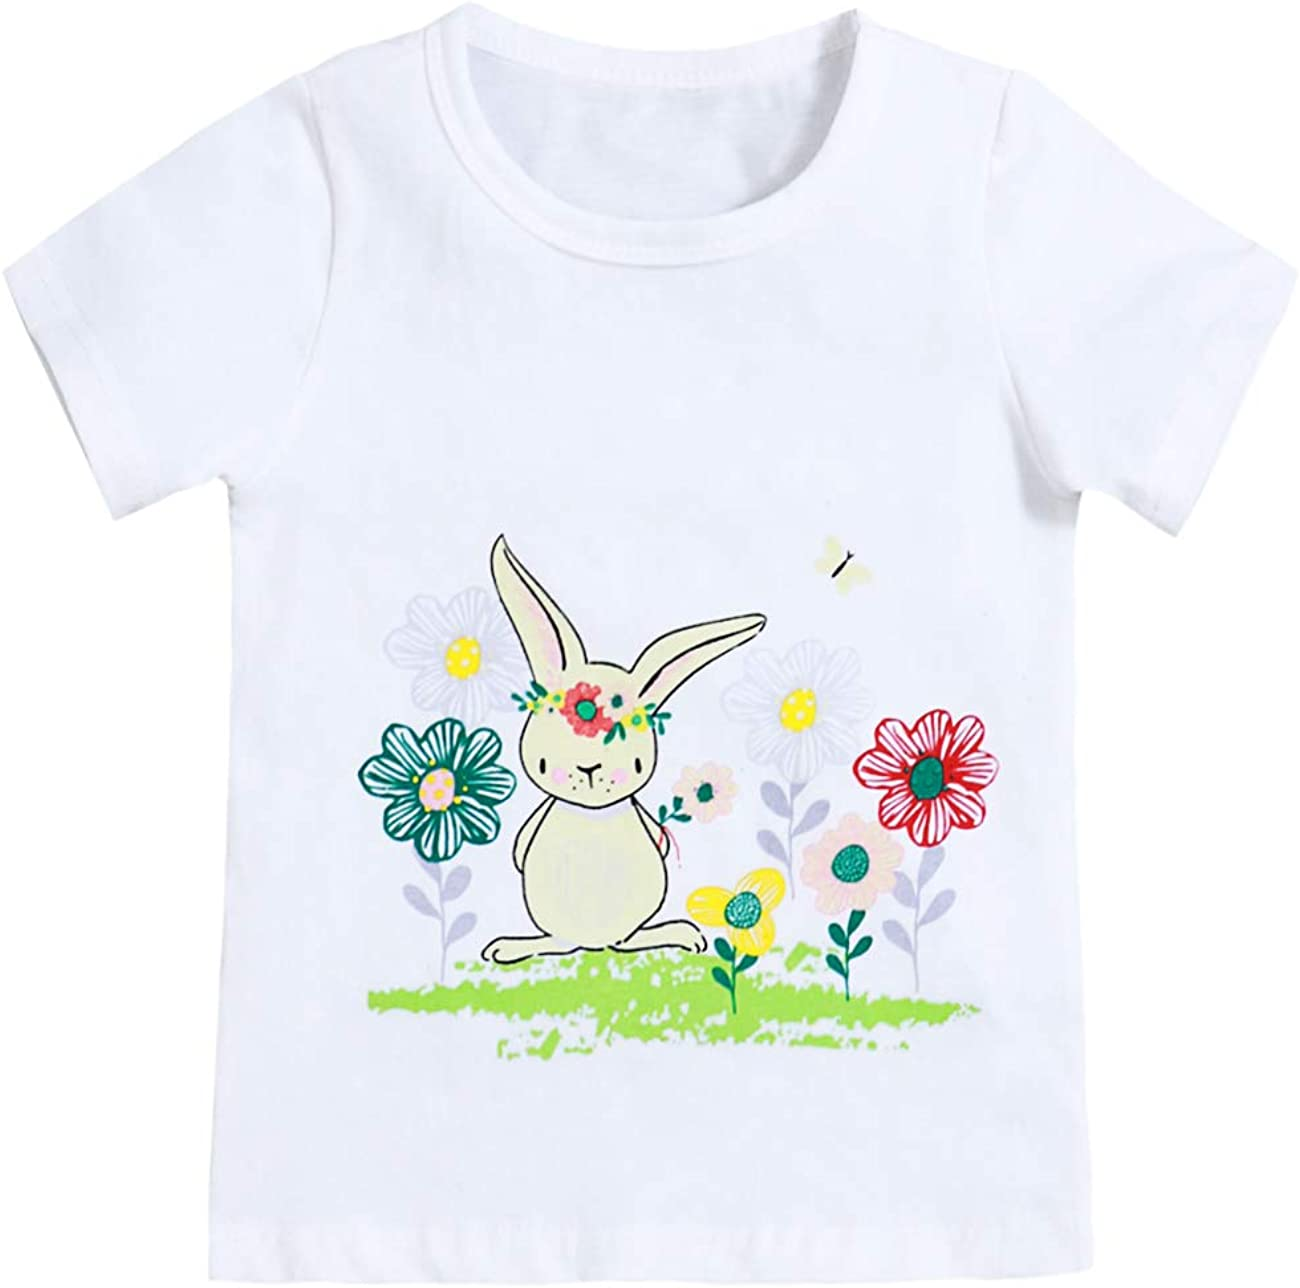 NEW Children Boy Summer t-shirt Easter Bunny Girls/' Graphic Tee Tops Cotton Age